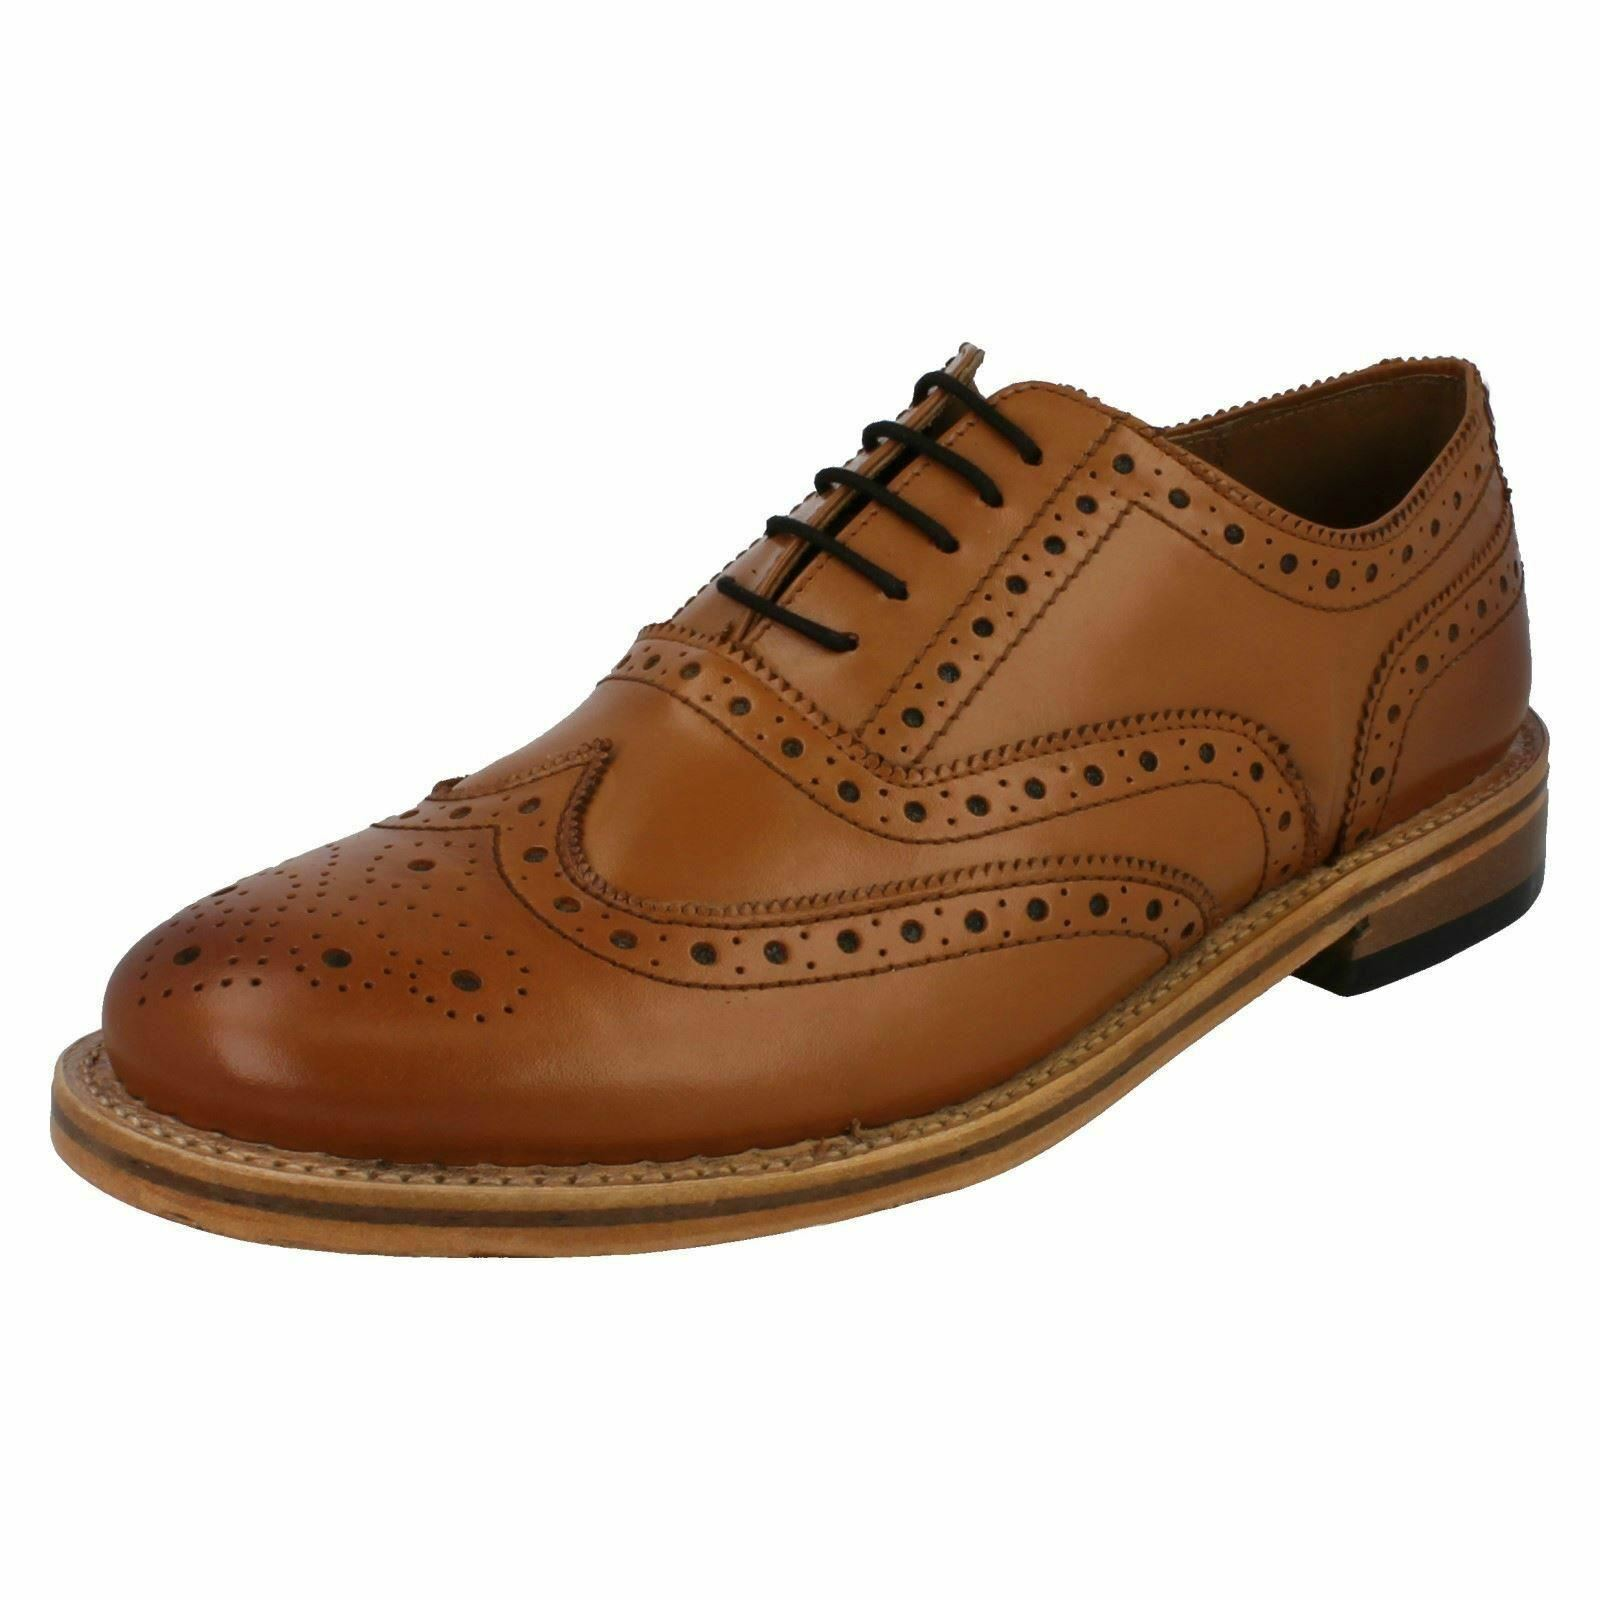 Mens Mcates Formal Tan Brogues by Catesby - £69.99